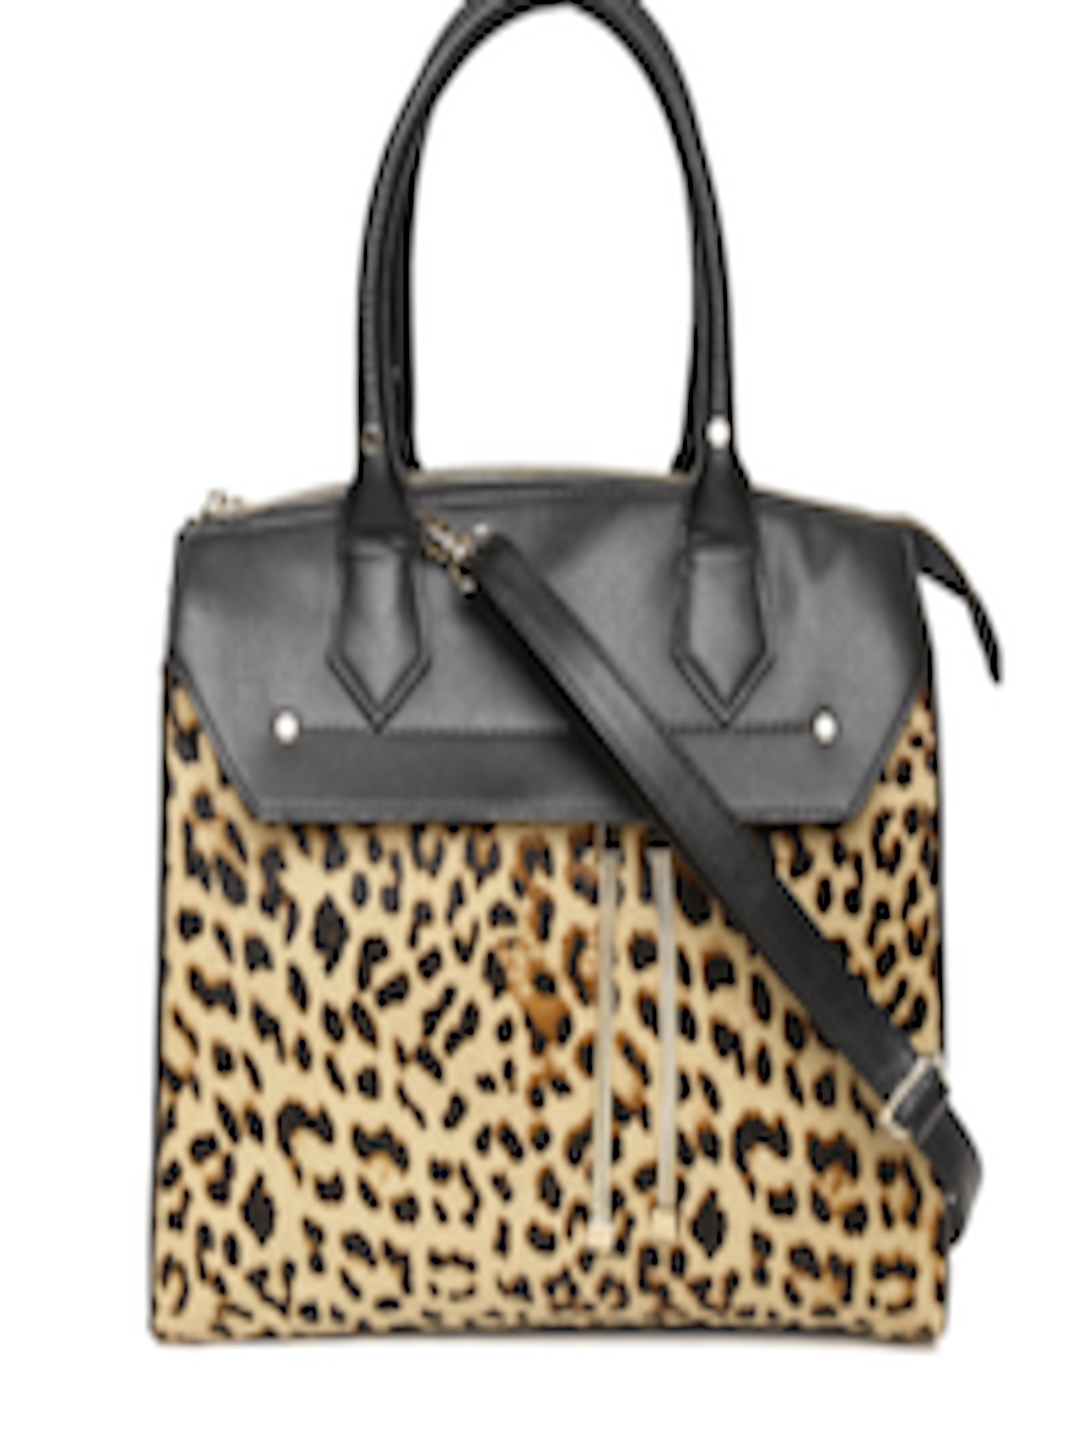 efa60a93ce1c Buy ALDO Beige & Black Animal Print Handheld Bag With Sling Strap - Handbags  for Women 2122619 | Myntra